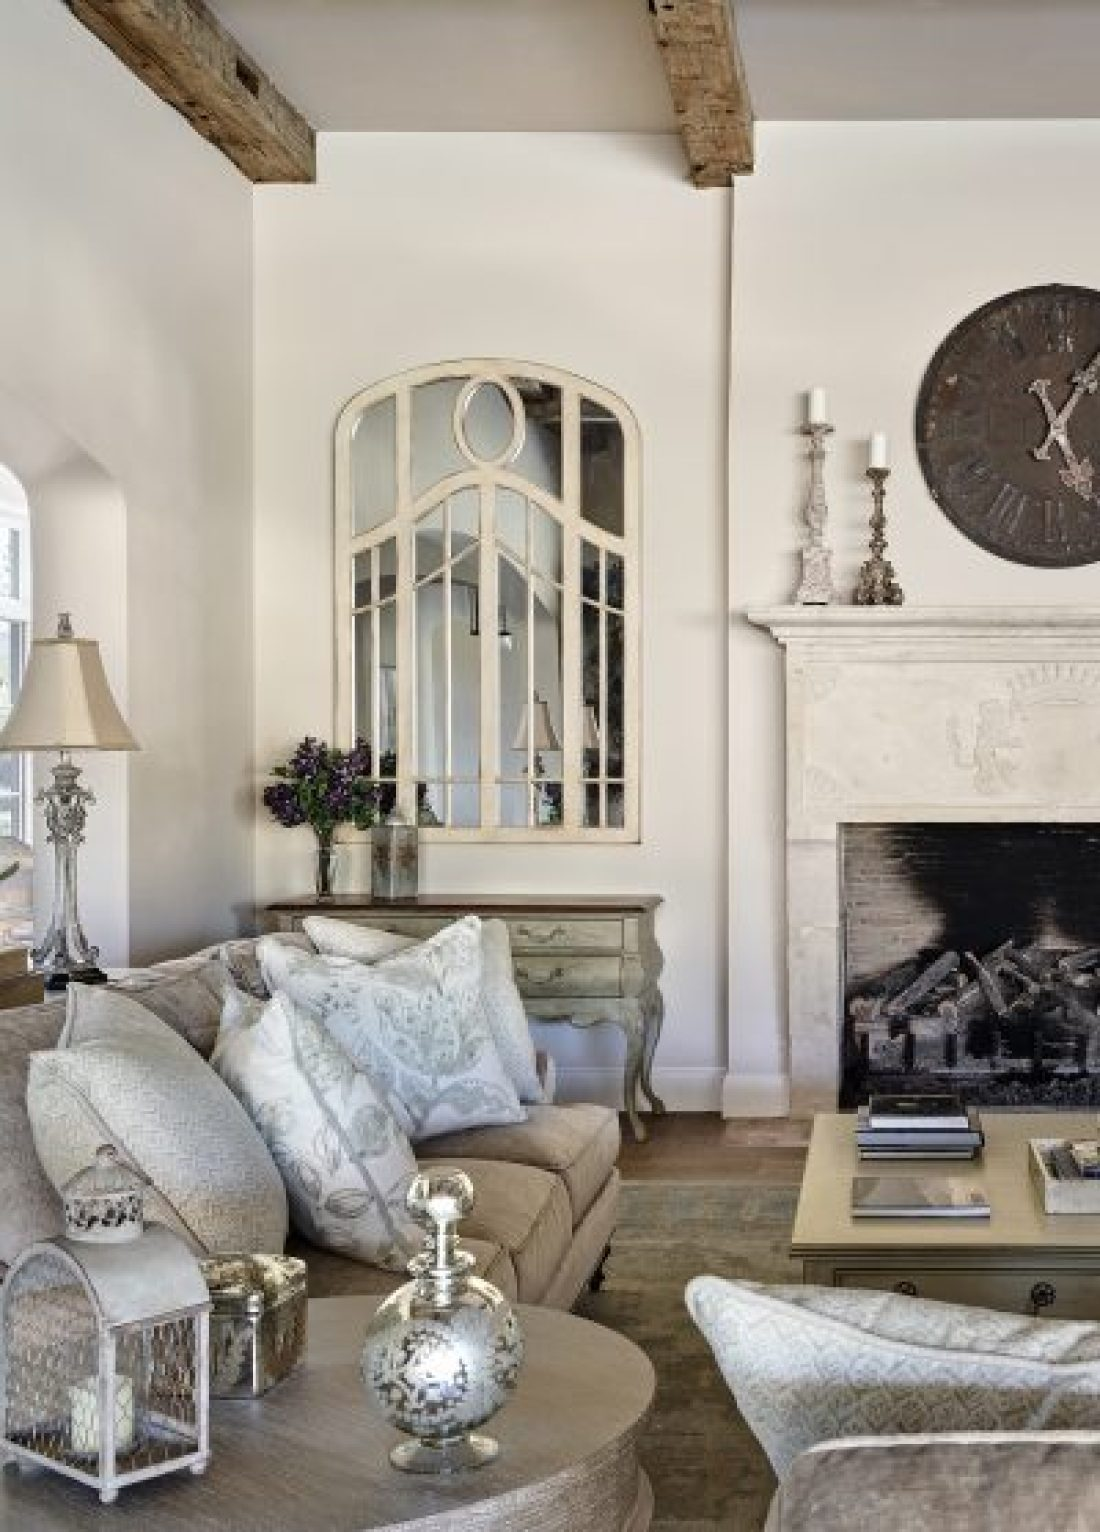 Photos Of Living Rooms. Living Rooms 36 French Country Room Ideas  Design for Image Gallery